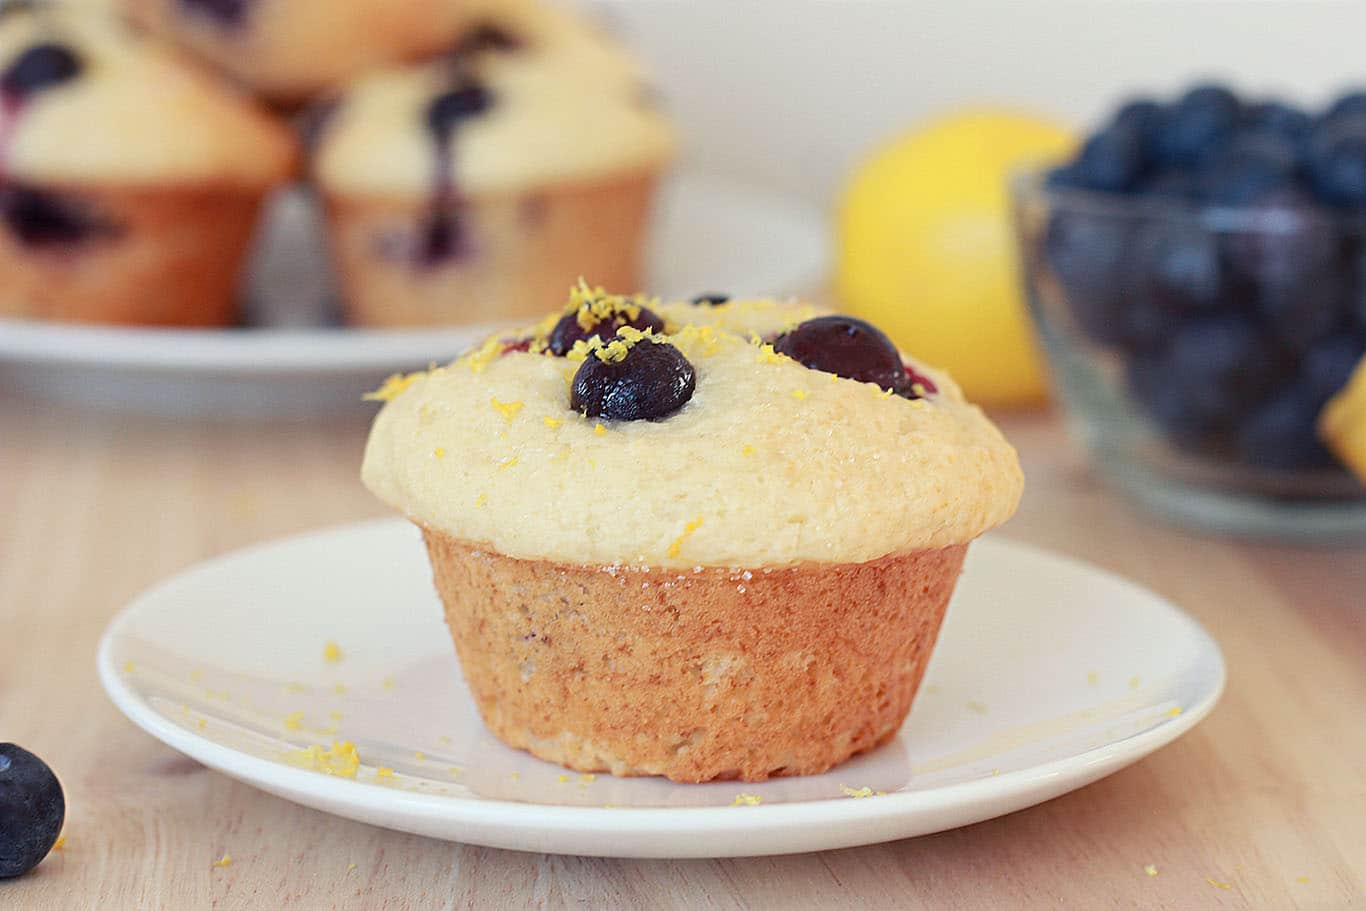 Lemon Blueberry Muffin on a plate